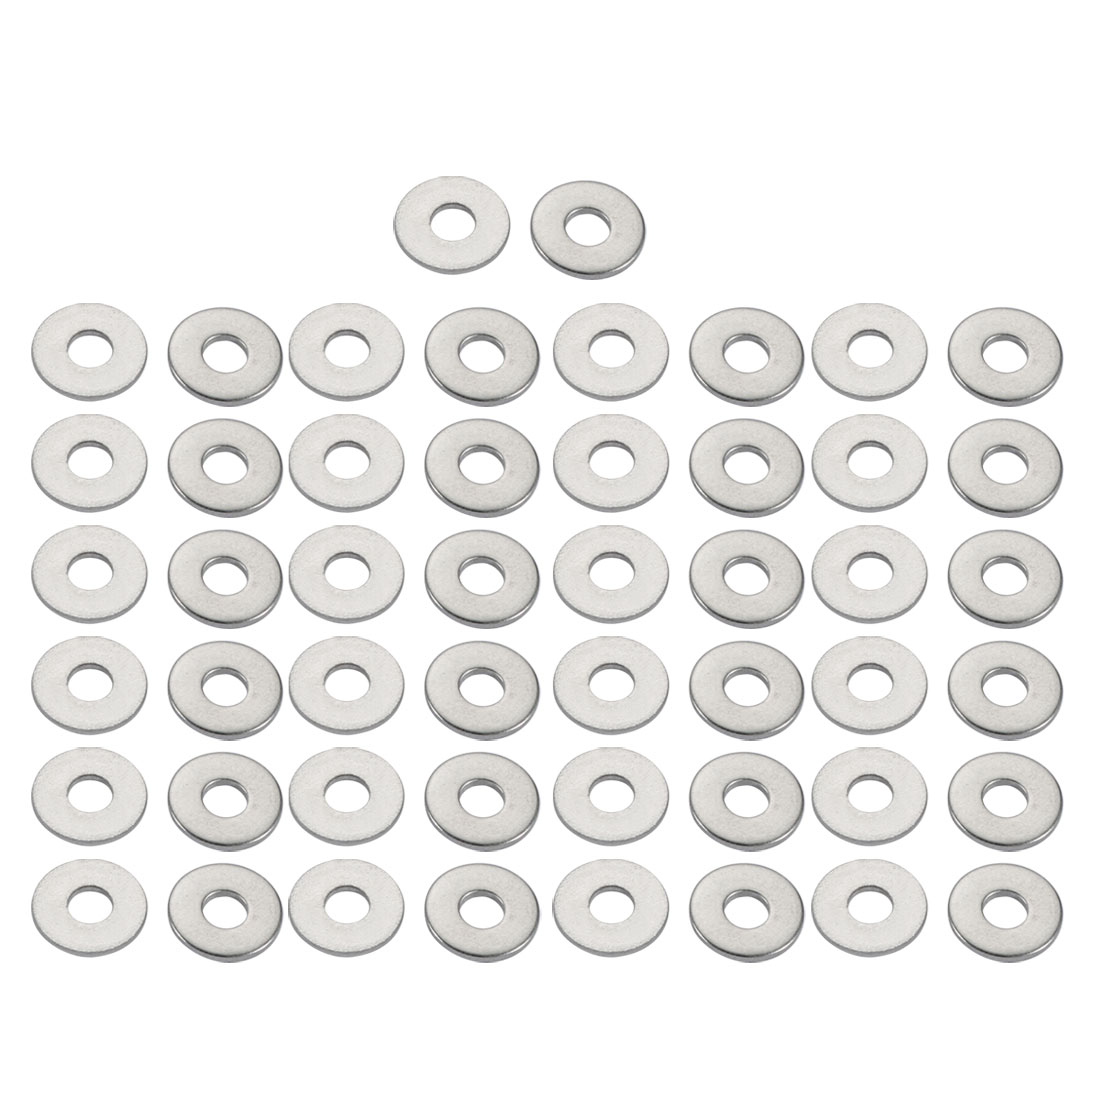 M3x9mmx0.8mm DIN9021 316 Stainless Steel Flat Washer Silver Tone 50pcs